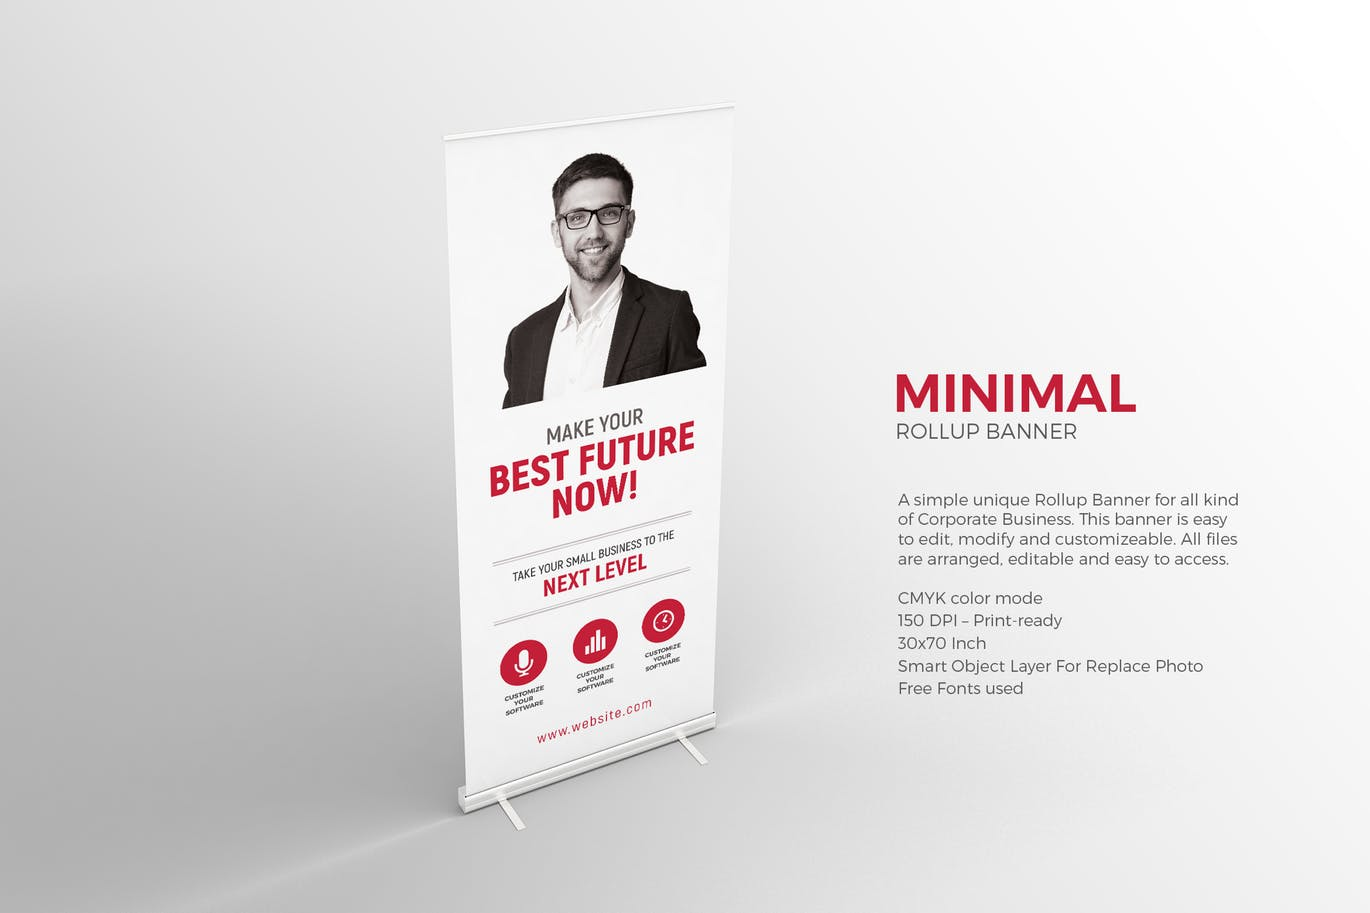 Minimal Roll-up Banner graphix_shiv_BILMODESIGN